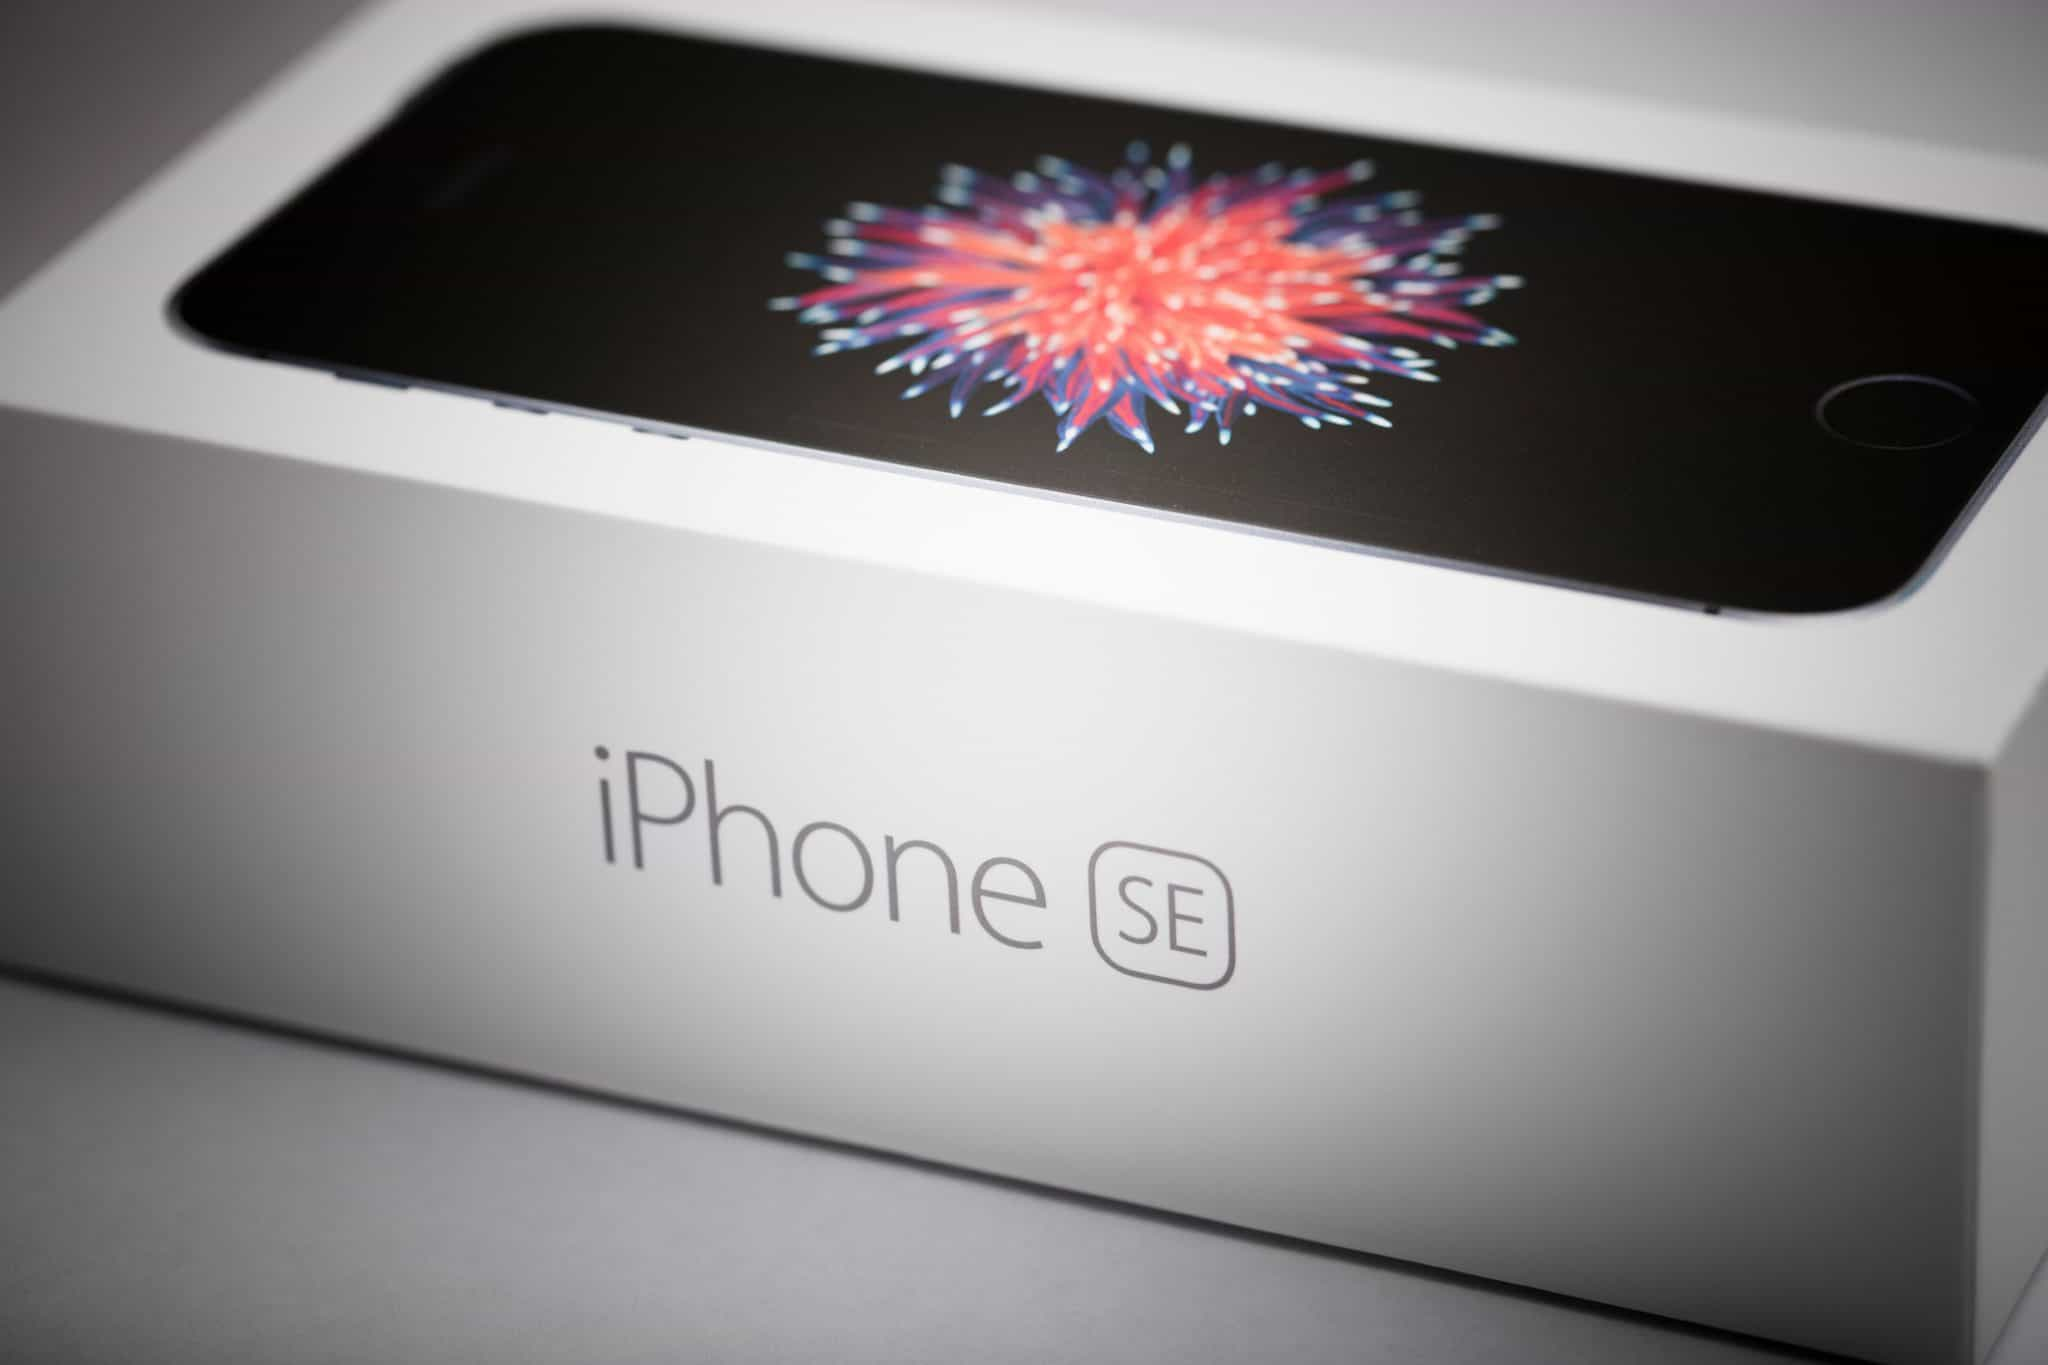 Apple iPhone SE 2 zal 489 euro kosten